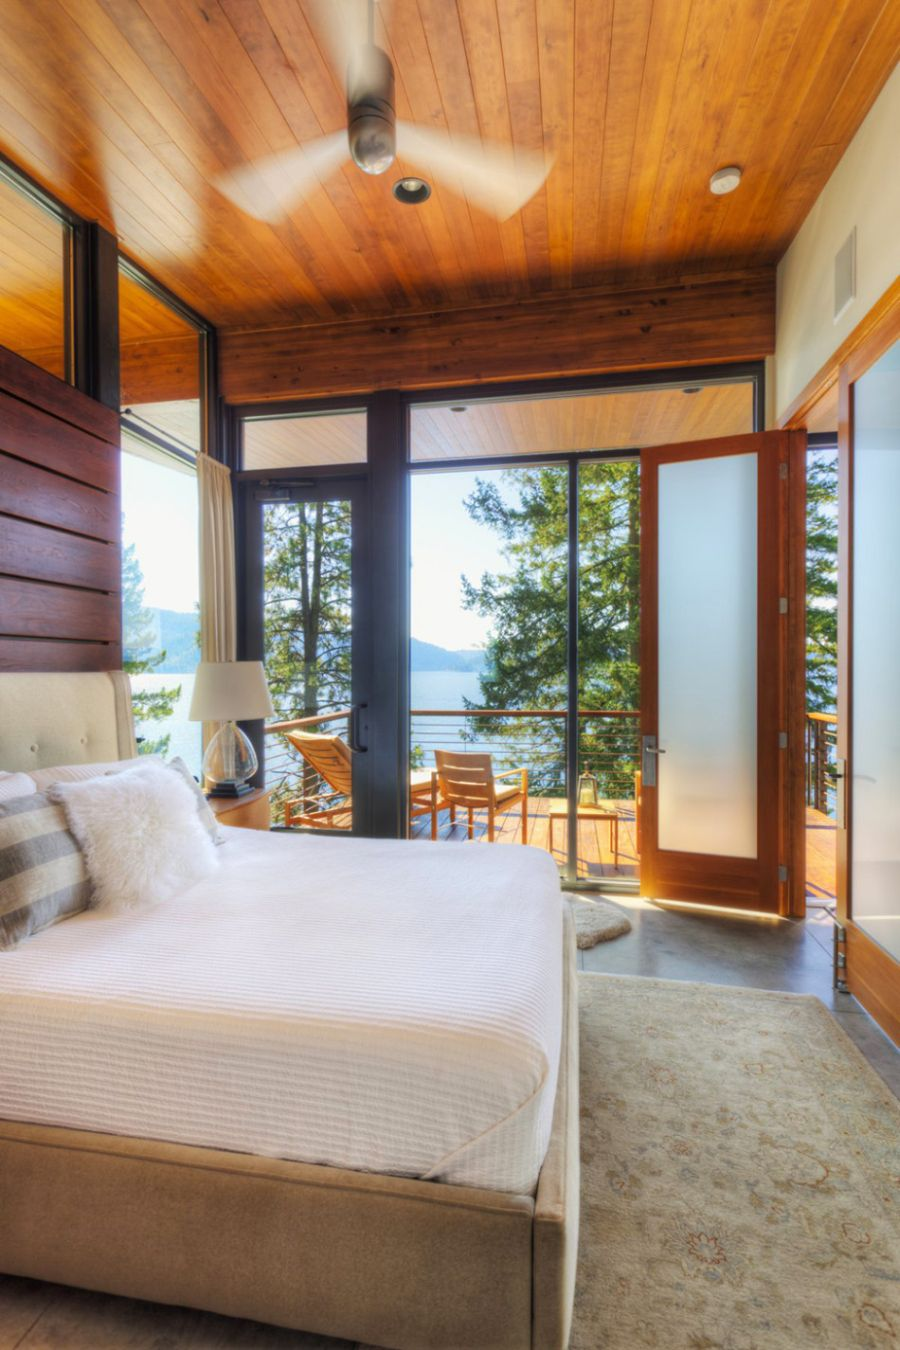 Plush bedroom with a lovely view